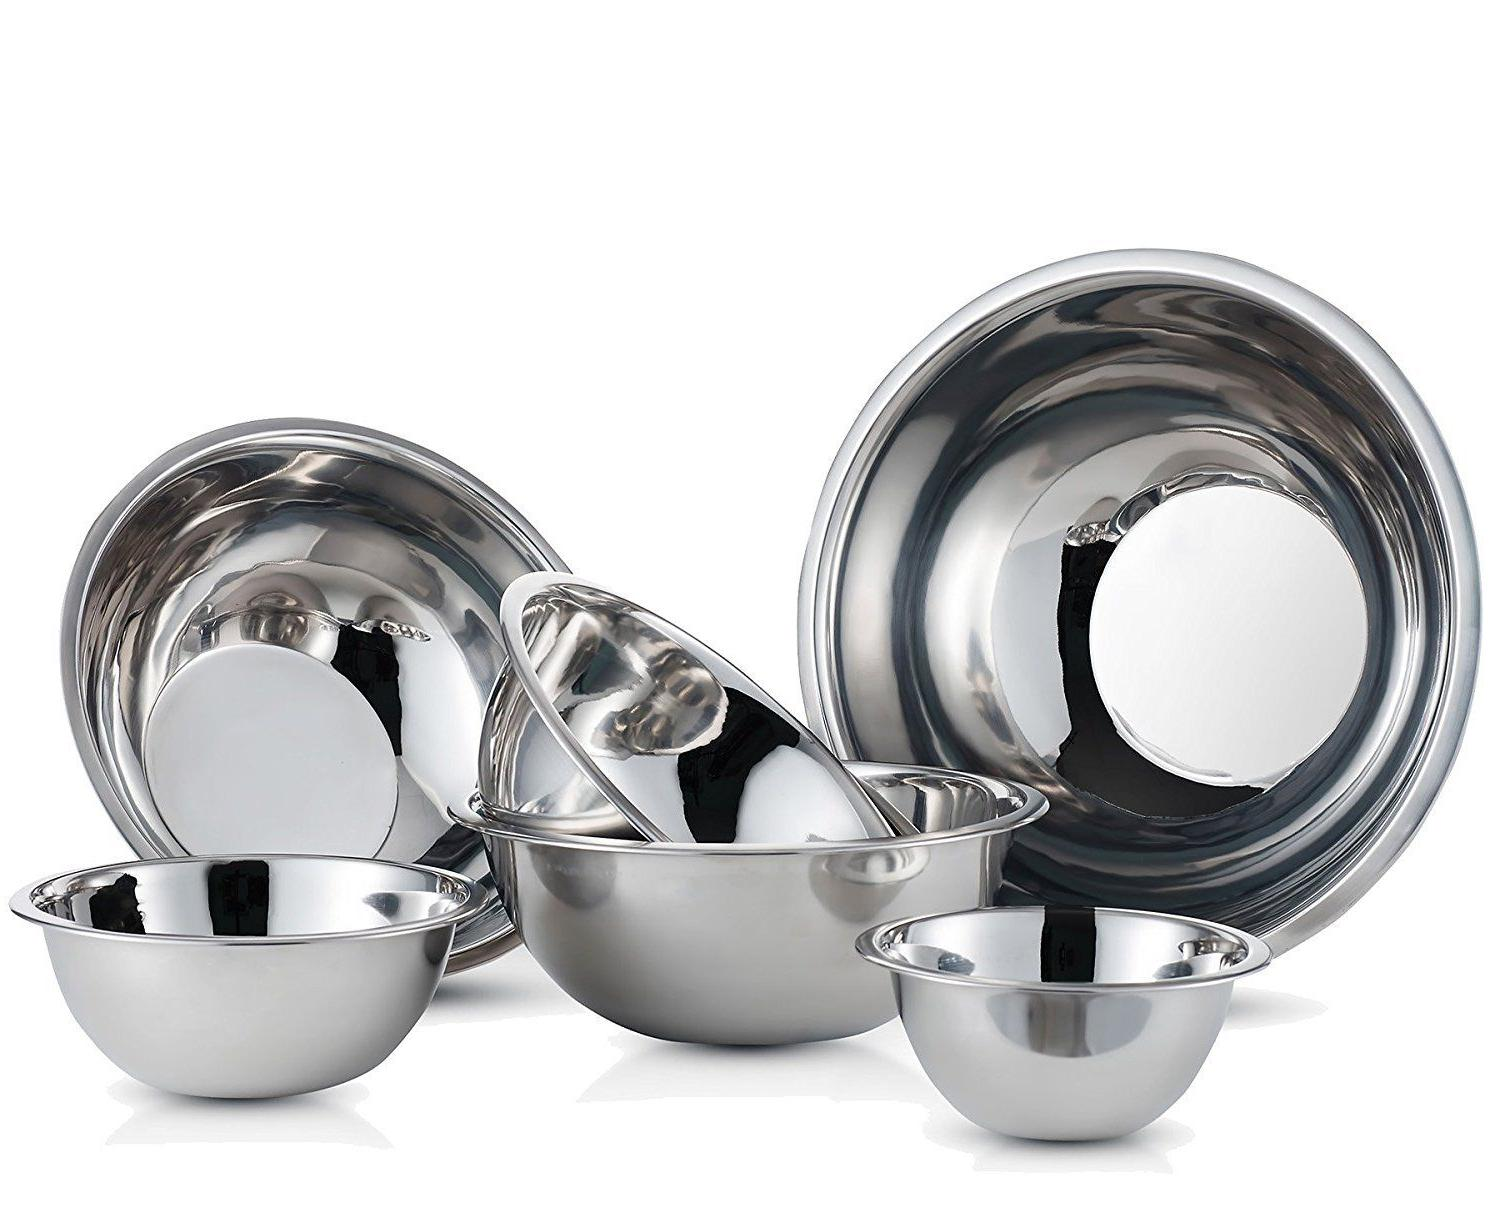 Stainless Bowls Polished Bowls